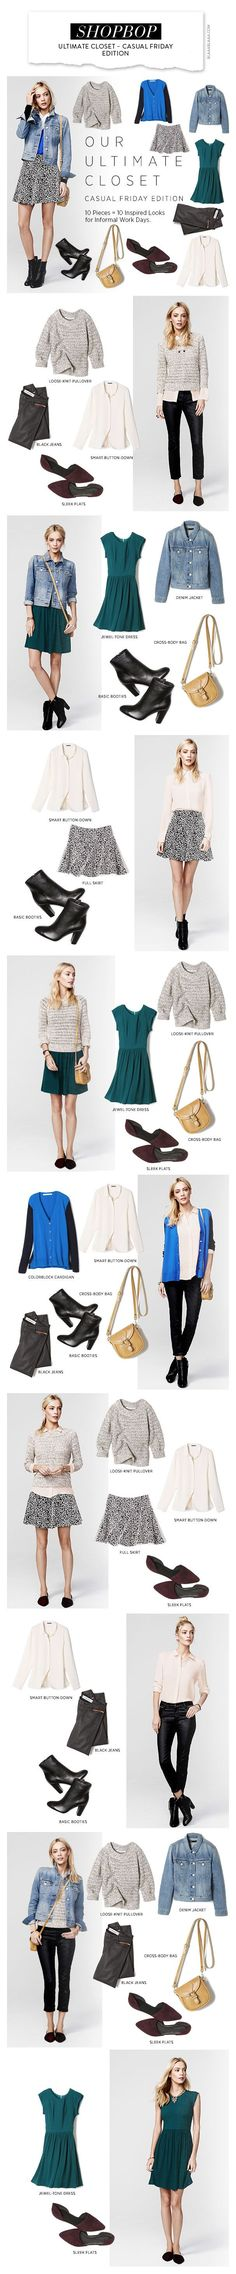 Shopbop: Ultimate Closet – Casual Friday Edition....